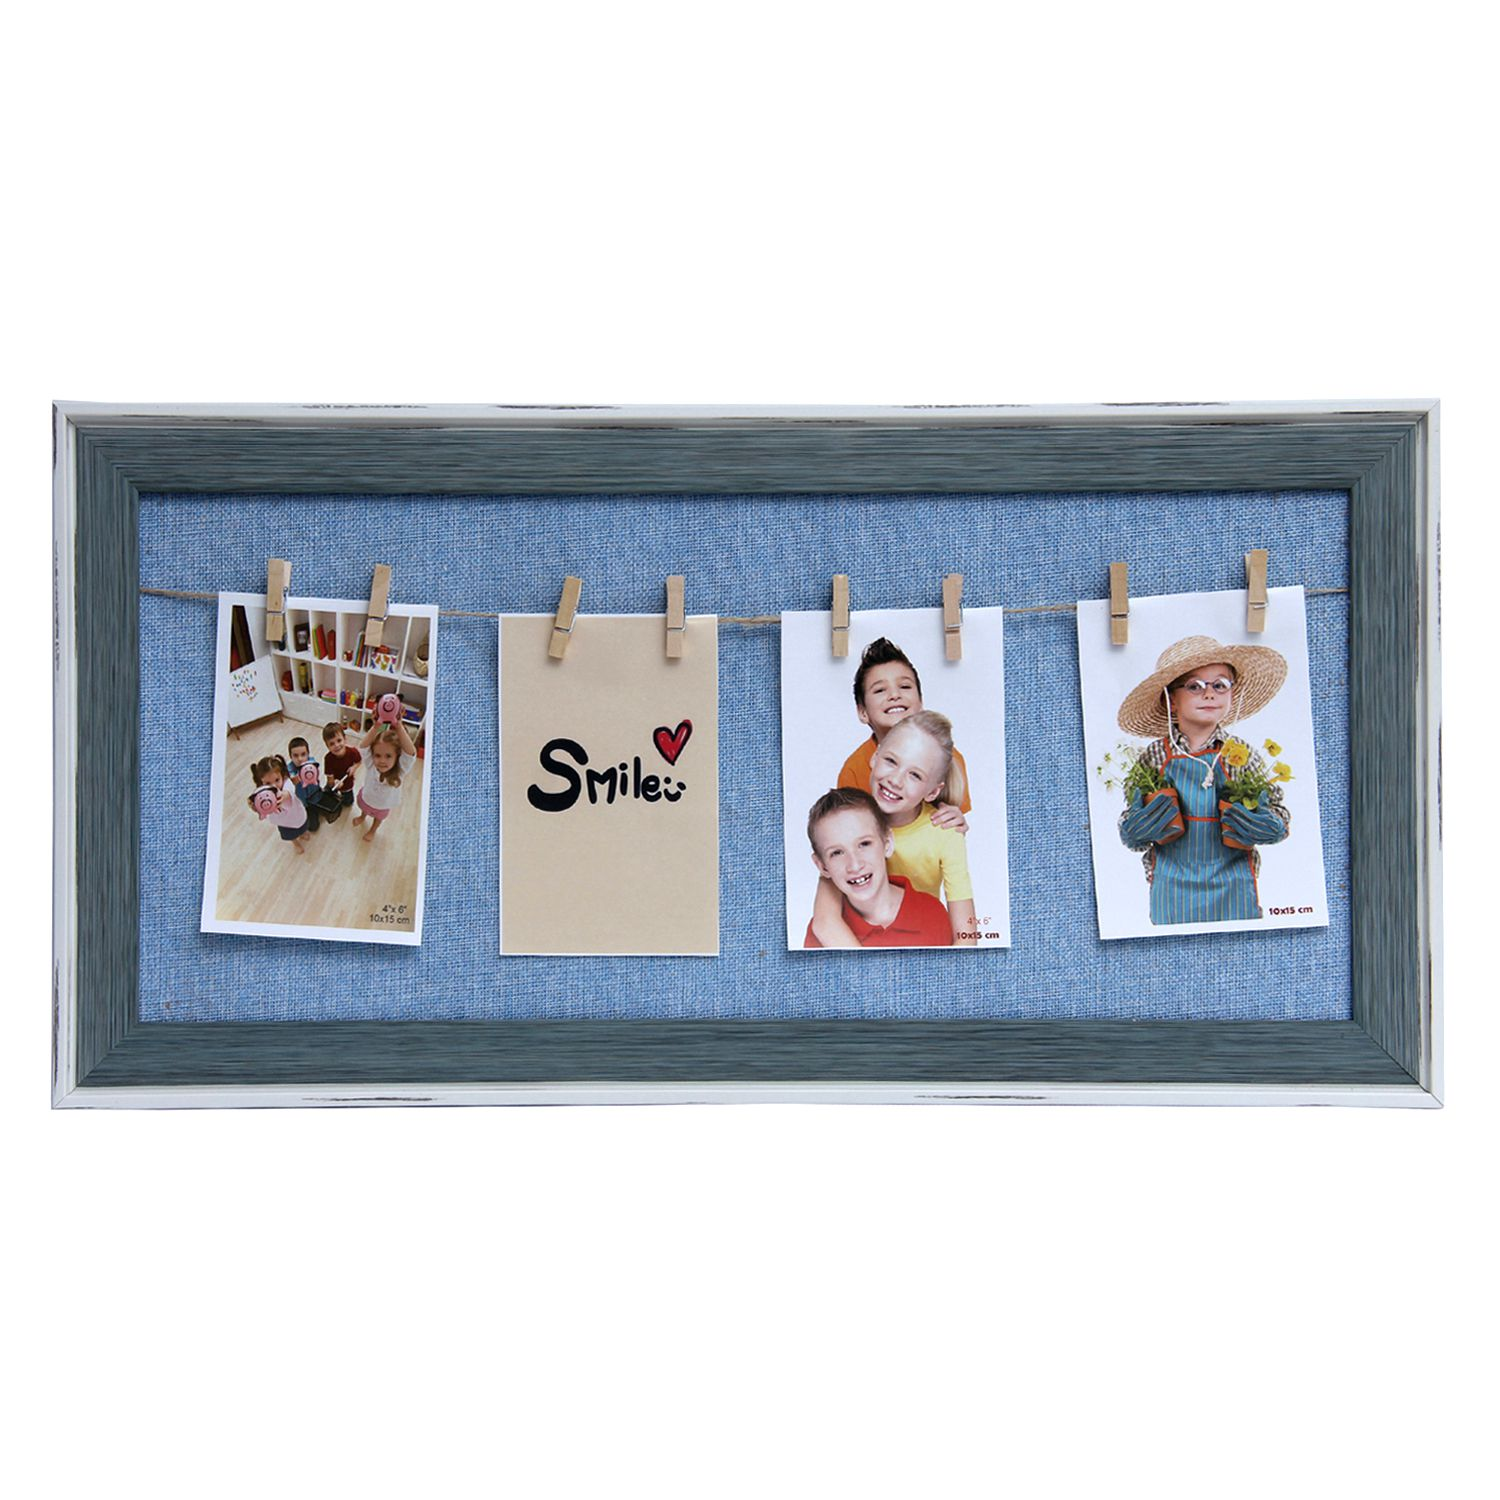 Tayhaa Wood Table Top & Wall hanging Blue Collage Photo Frame - Pack of 1